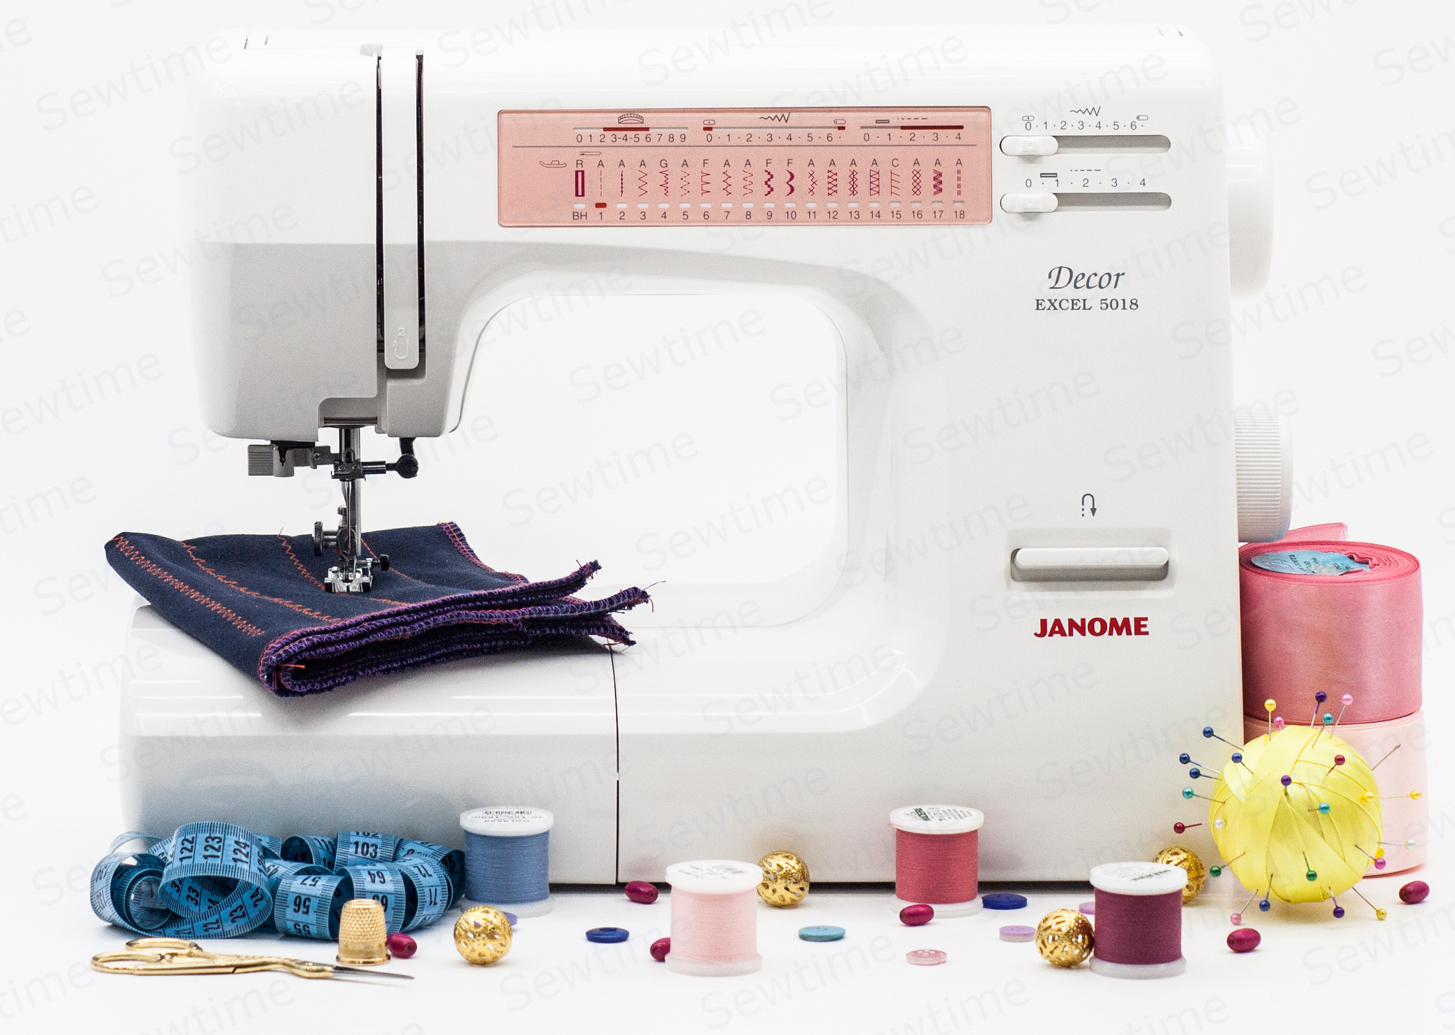 Janome 5018 janome 5018 for Decor excel 5018